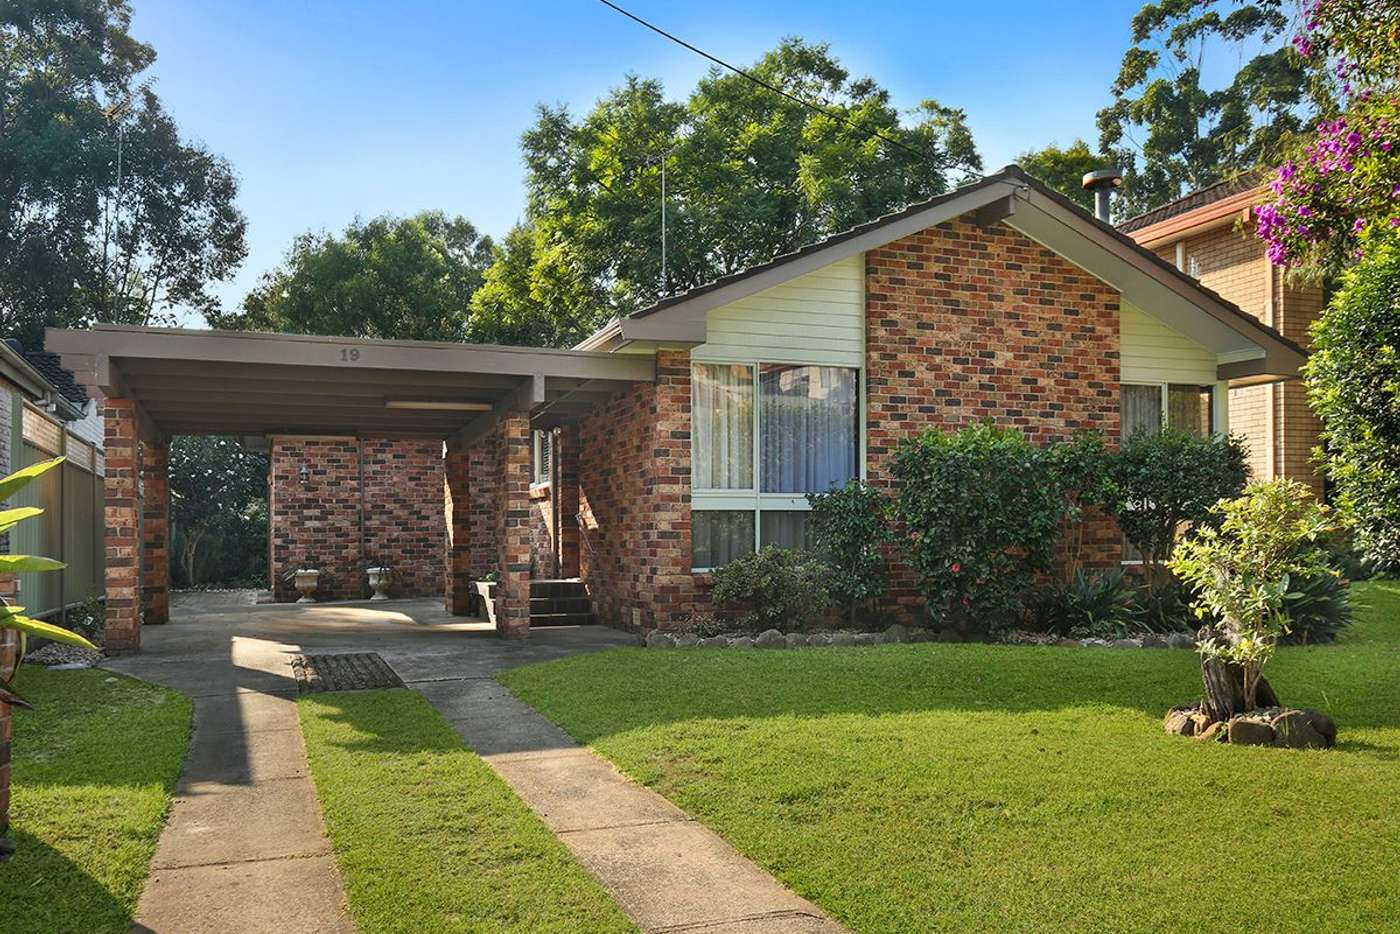 Main view of Homely house listing, 19 Whelan Avenue, Figtree NSW 2525